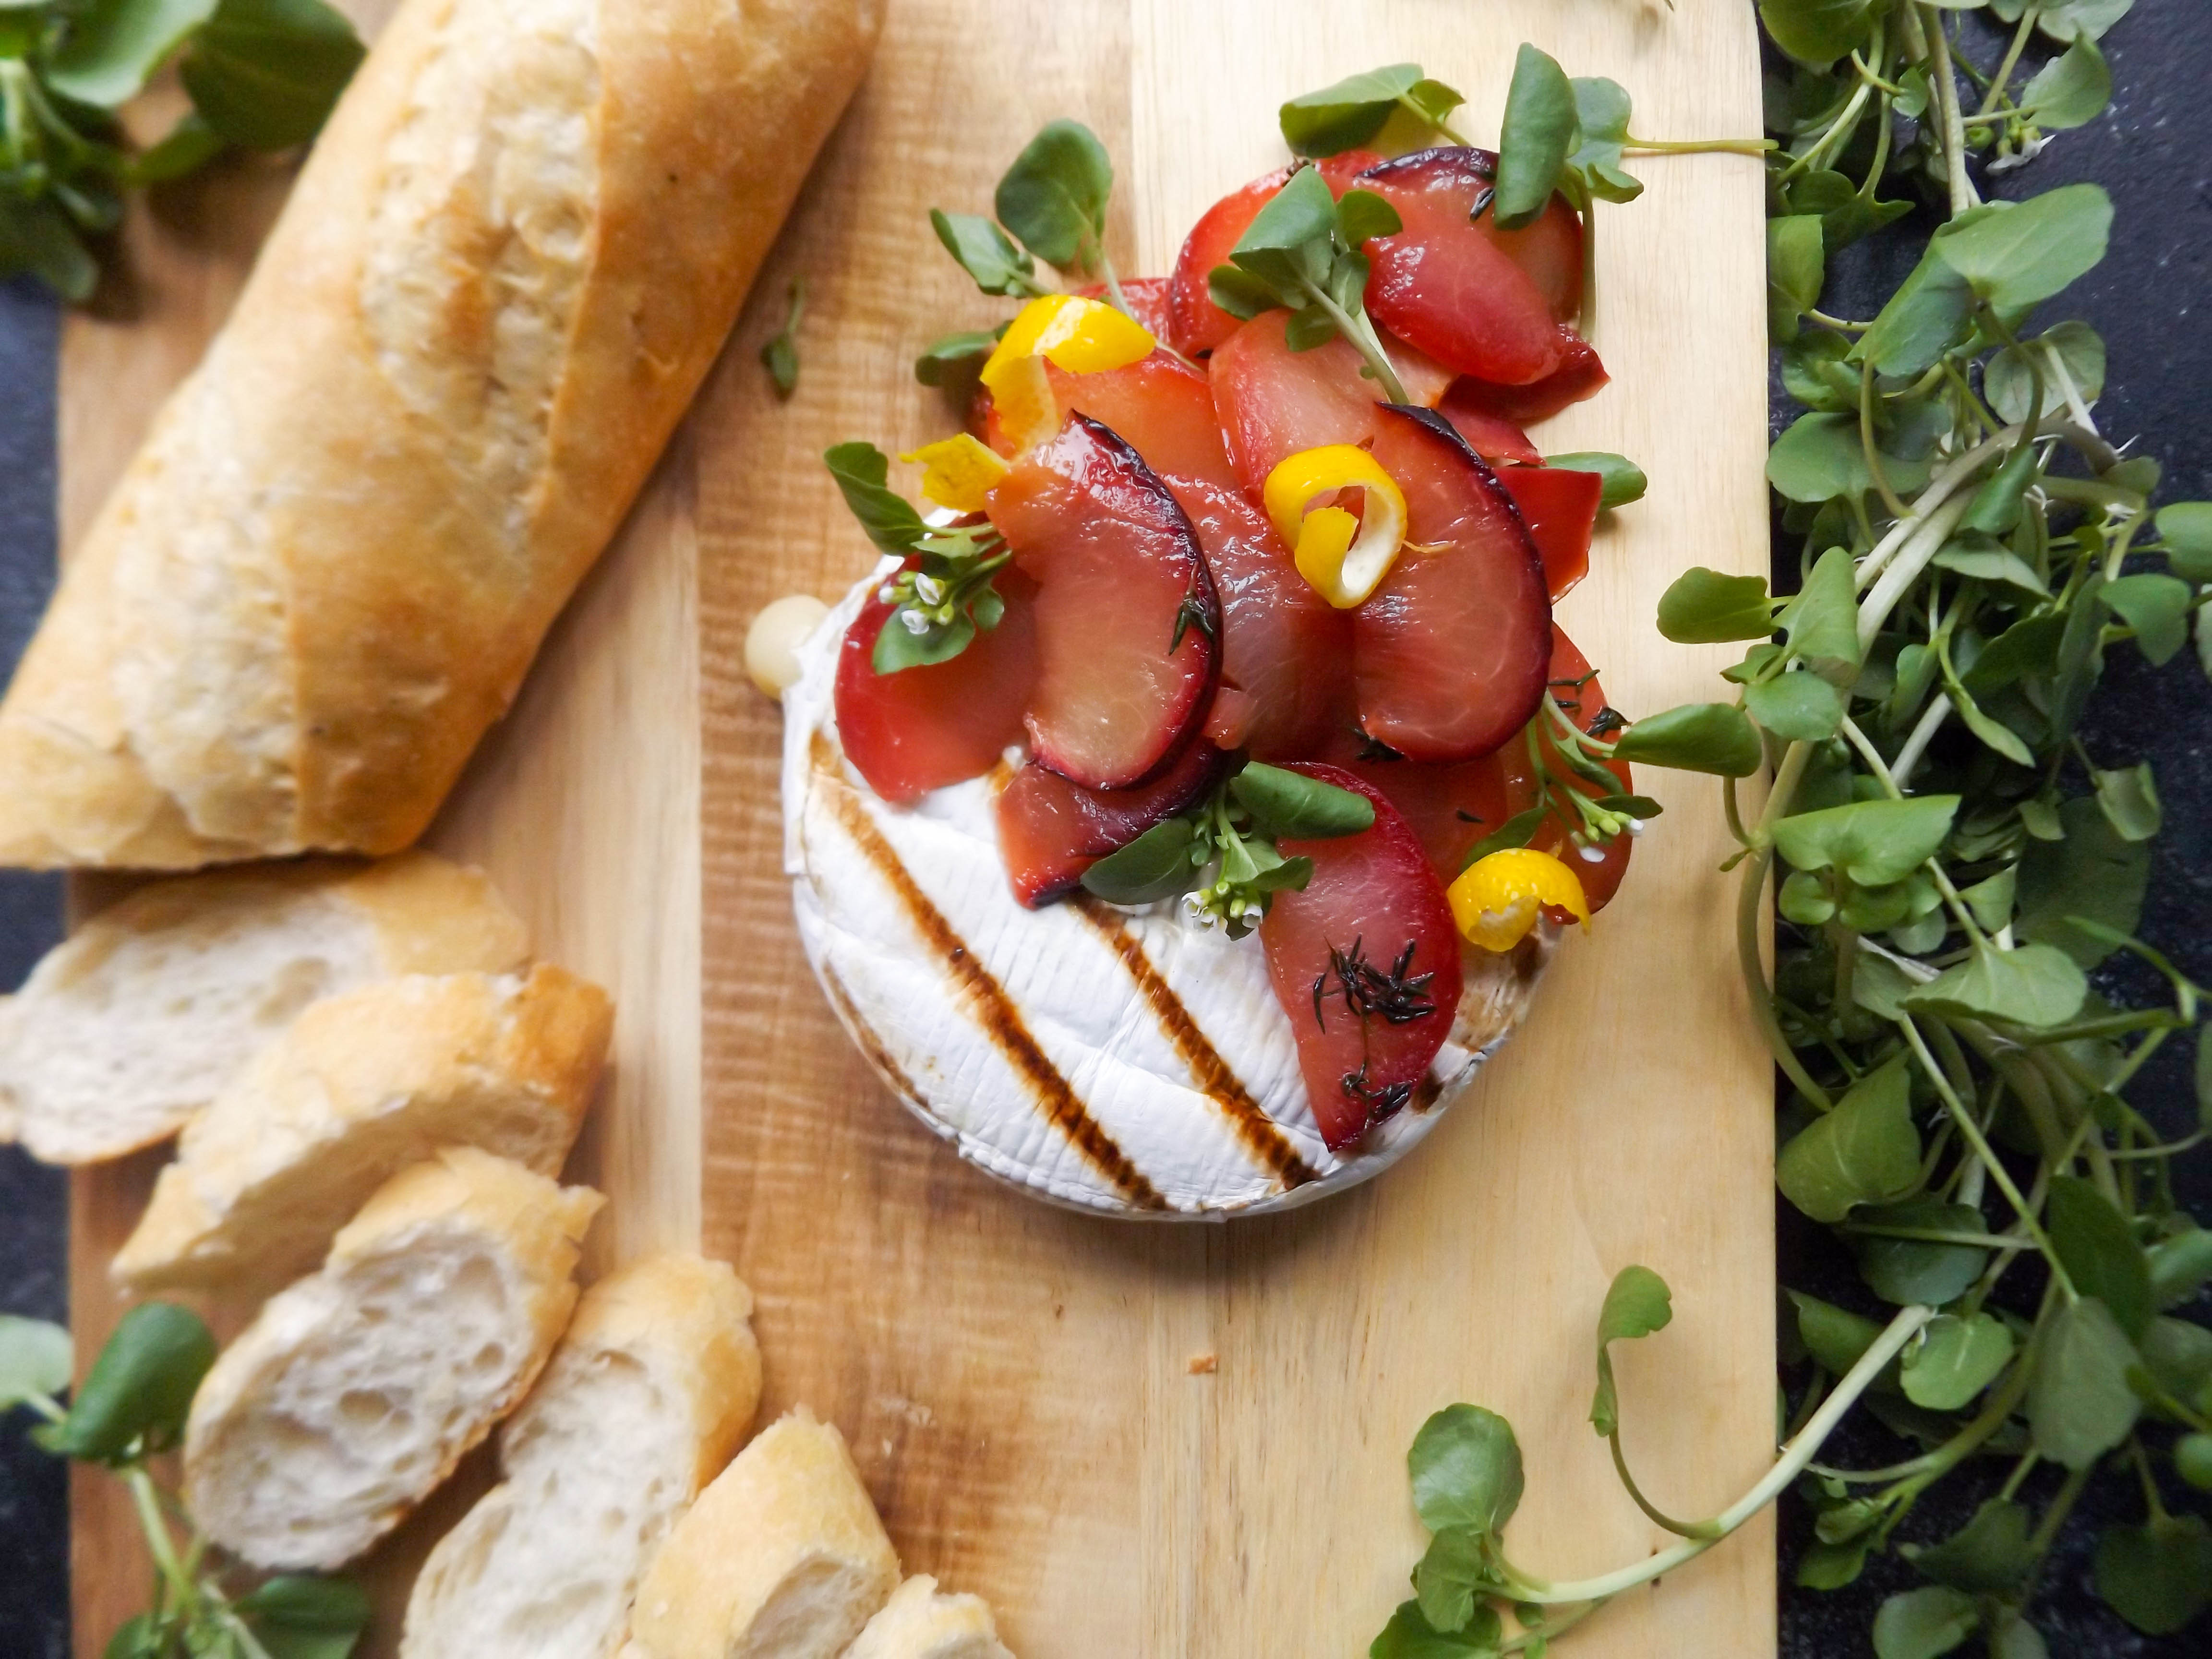 Grilled Brie & Plums